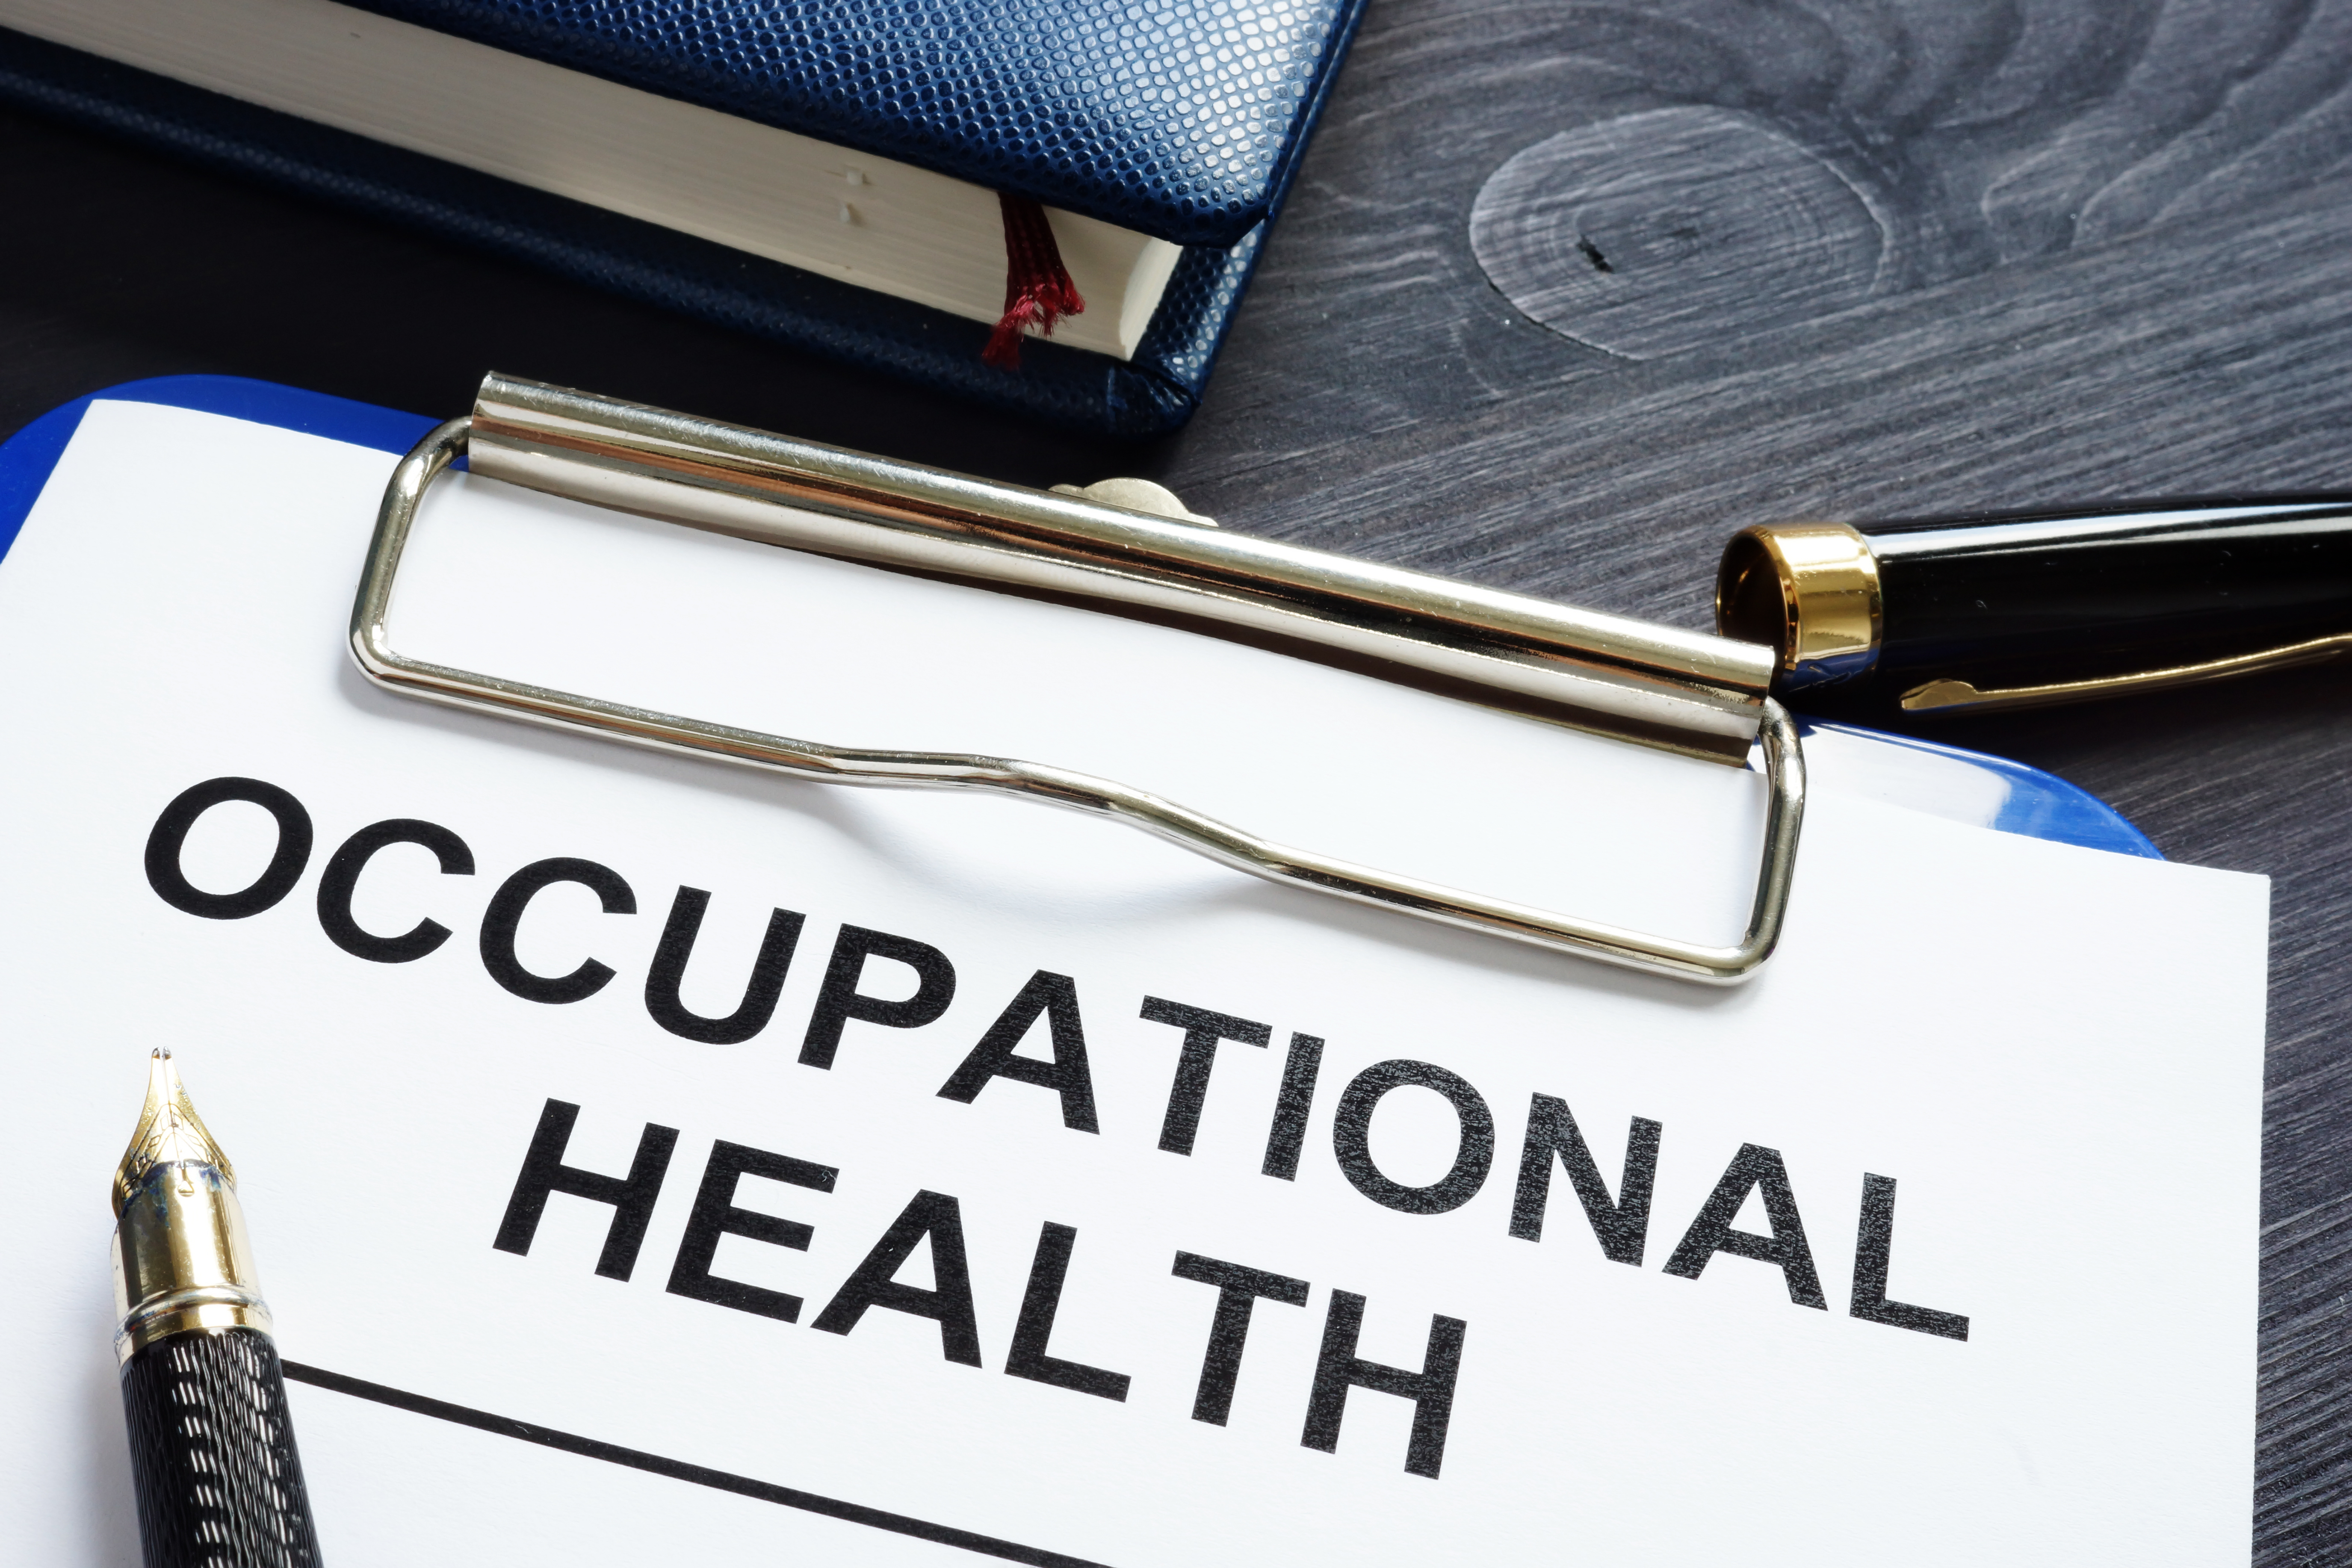 Illustration sheet with Occupaional Health written on it on a clip board and a pen lying next to it